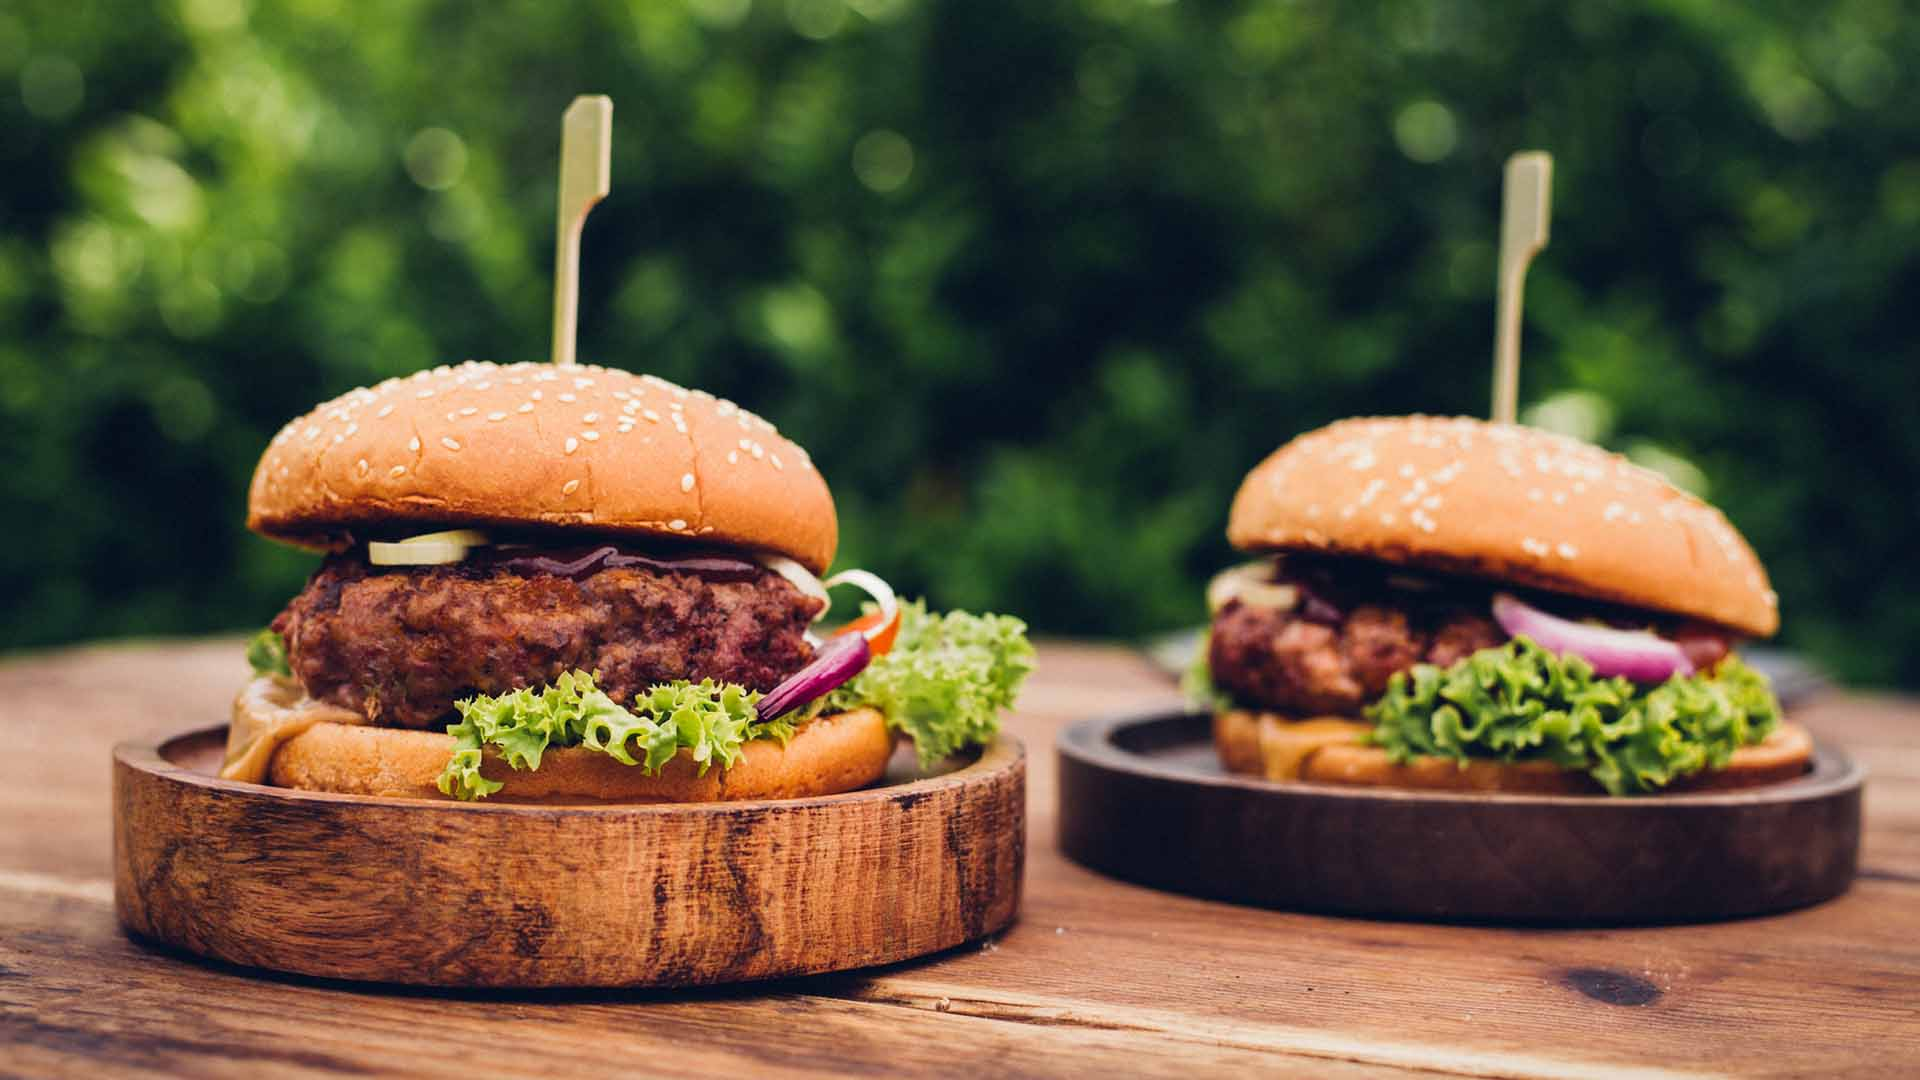 Two delicious gourmet beef burgers on wooden platters outdoors